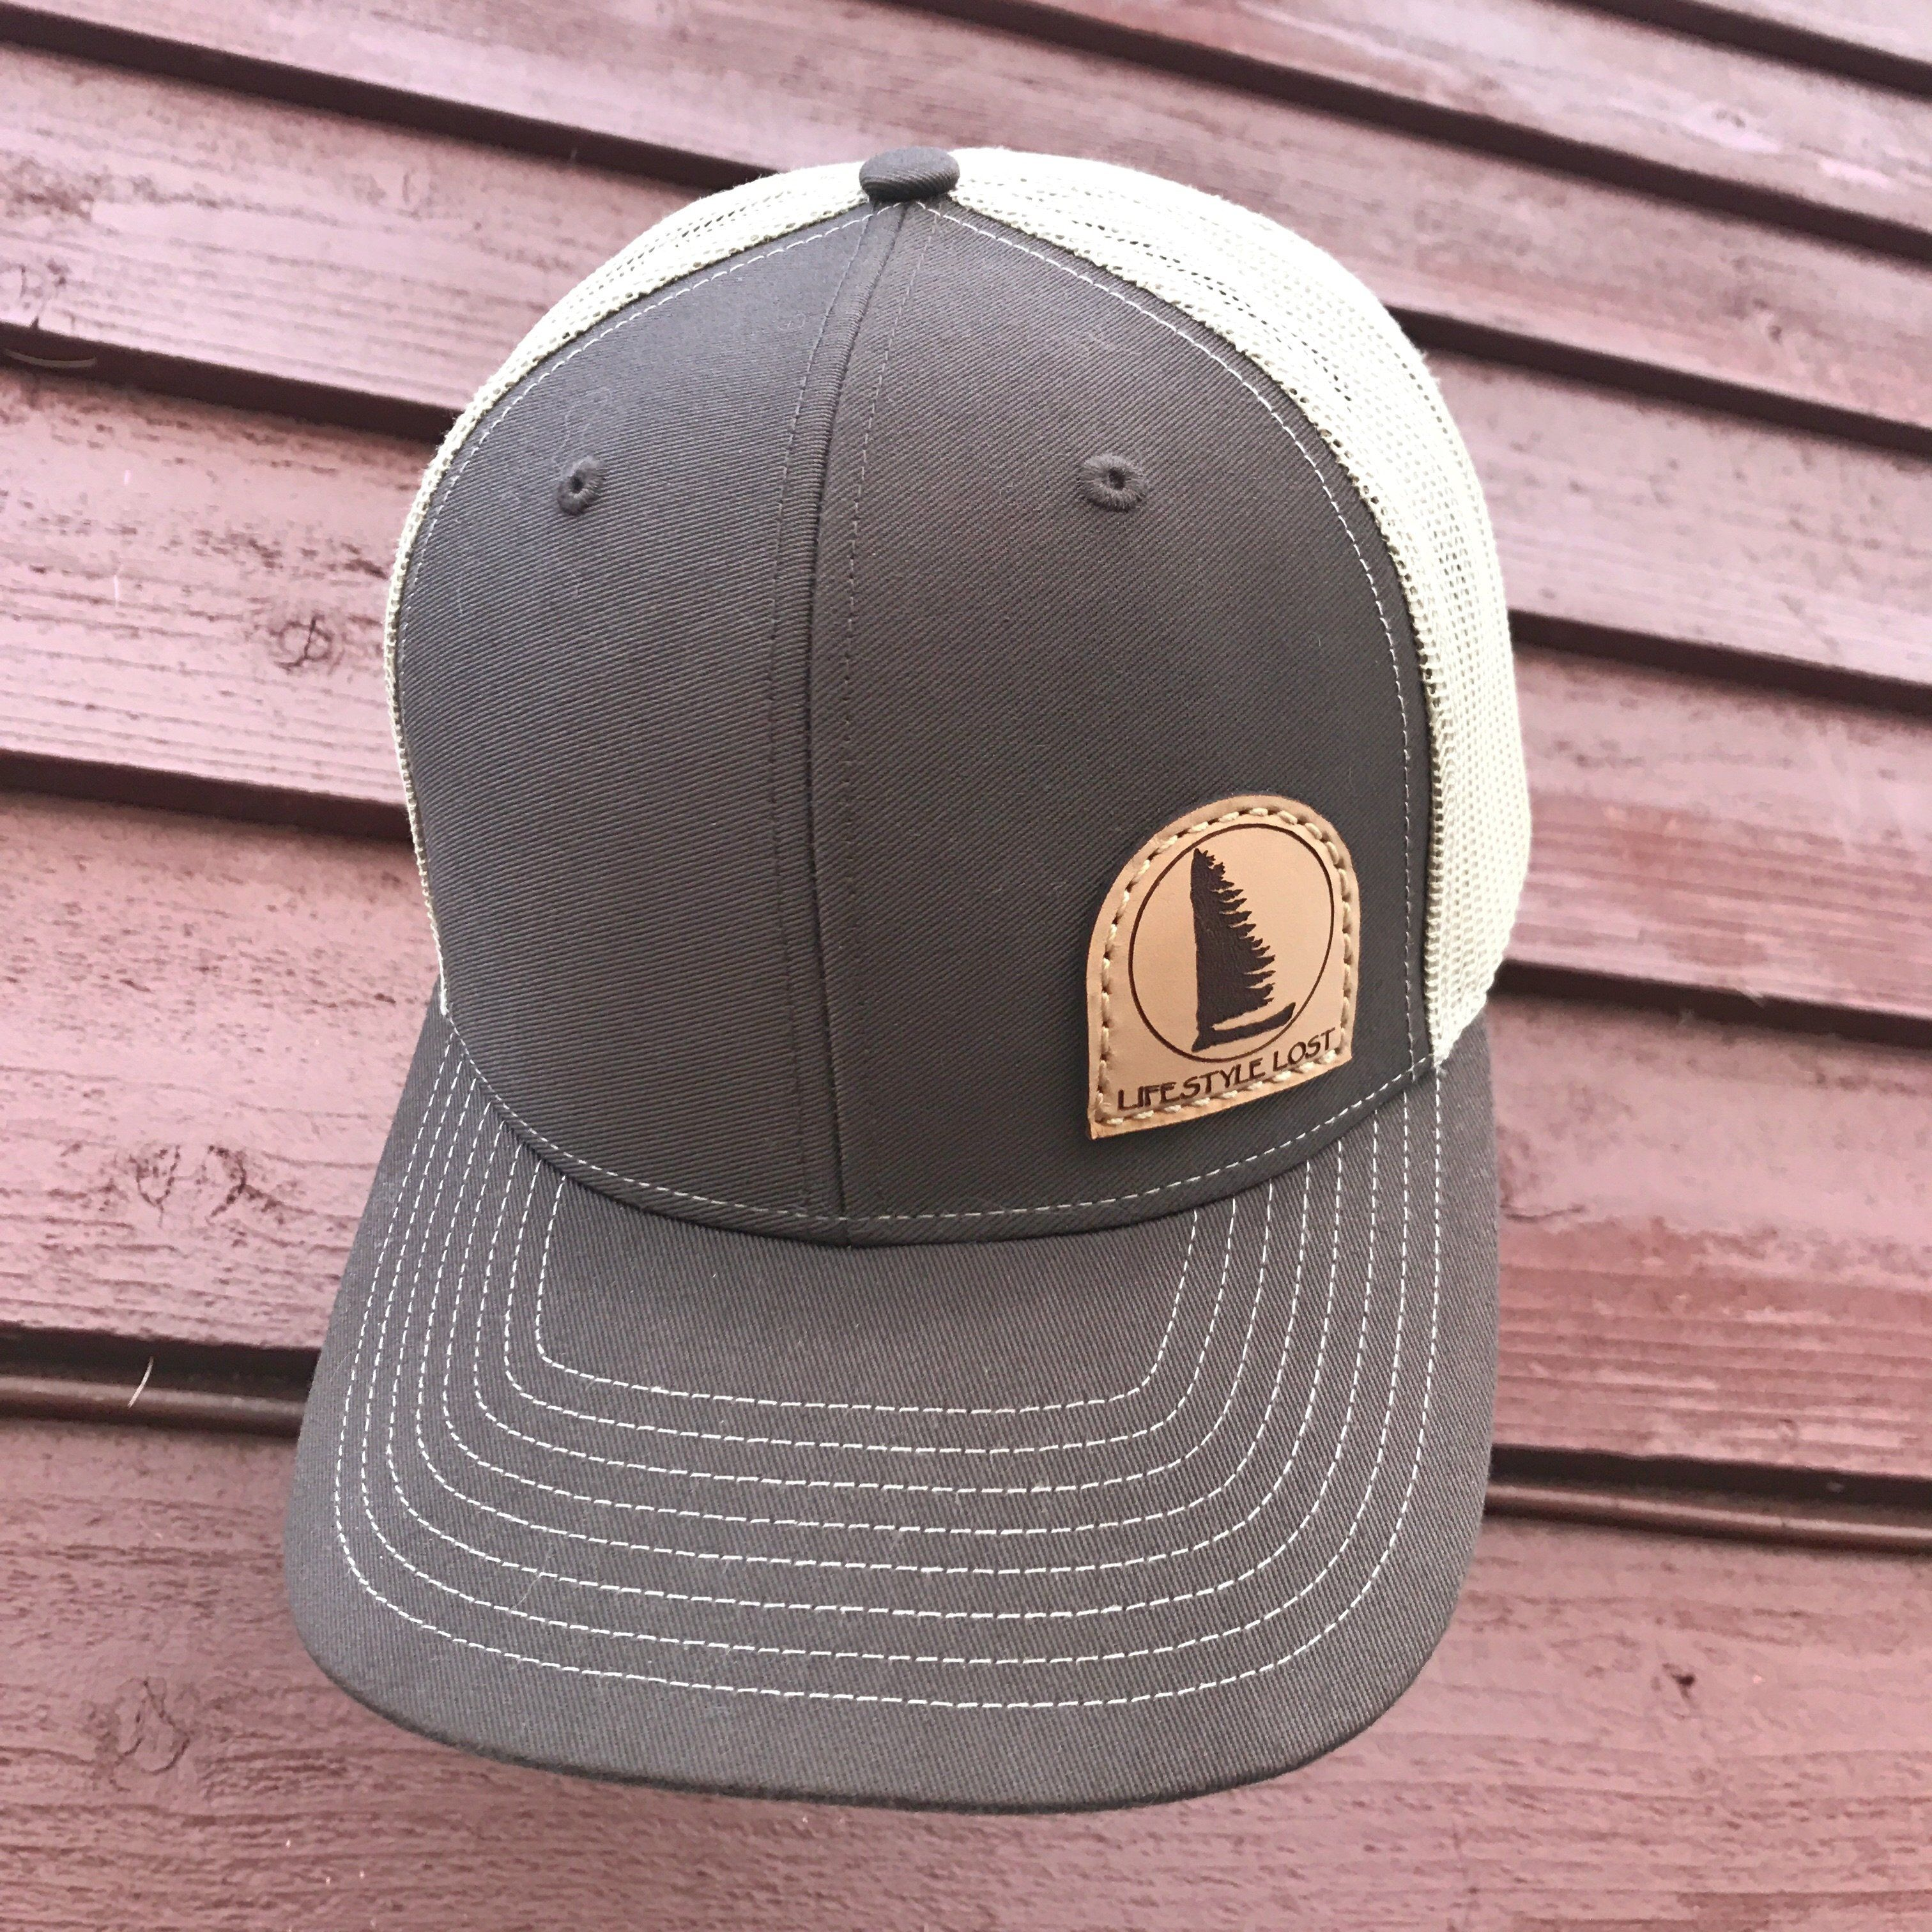 ebe093ed480 Hats will be first come first serve as orders come in     Snap back mesh  style hat with genuine leather patch. 100% off profits go back to  conservation!